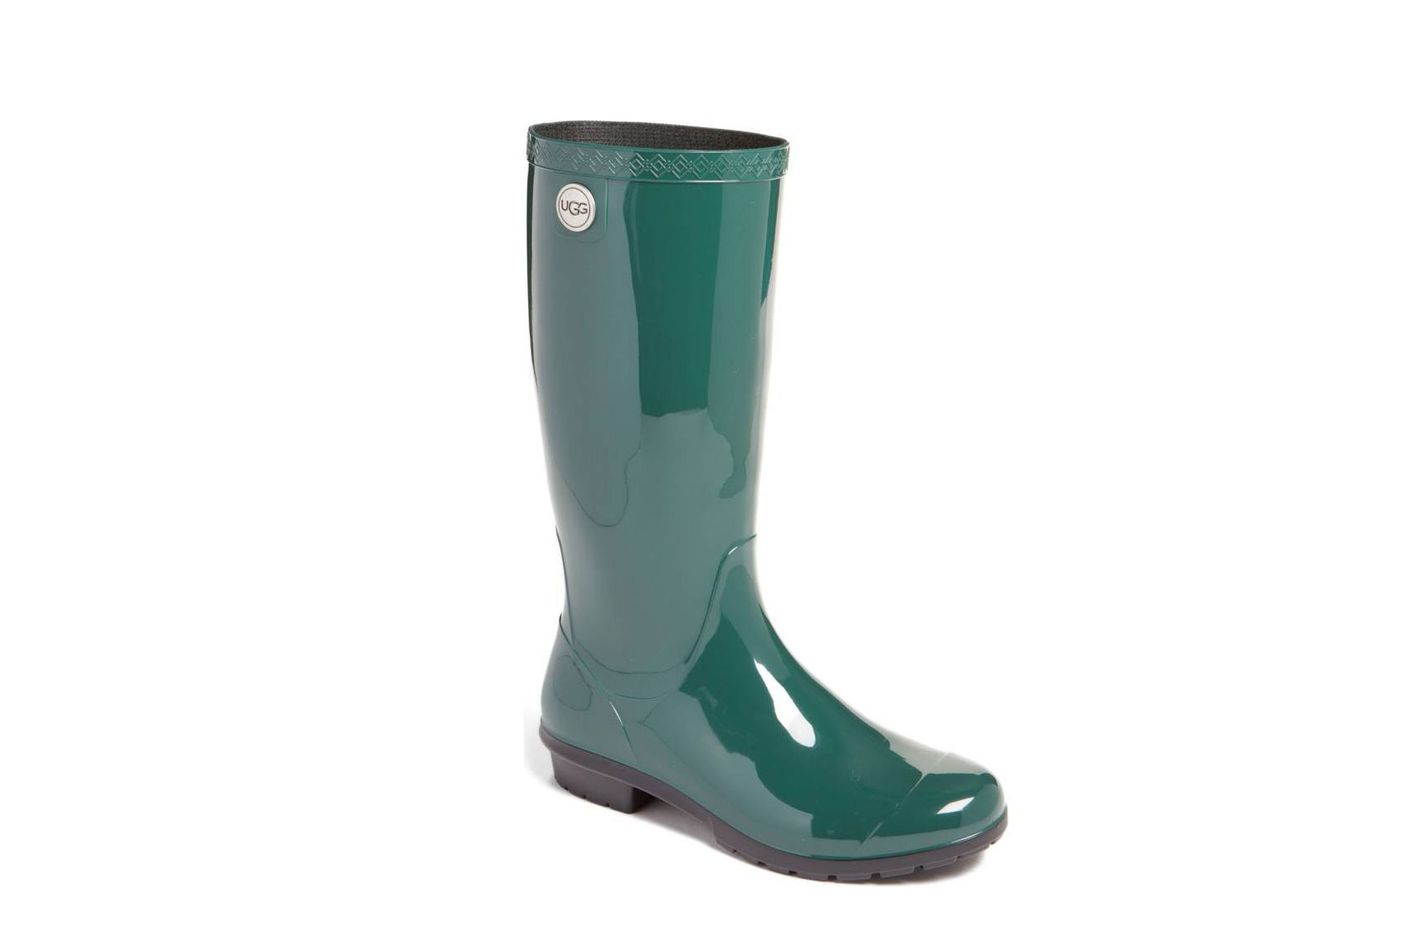 7c91186b1 The 15 Best Rain Boots for Women 2018